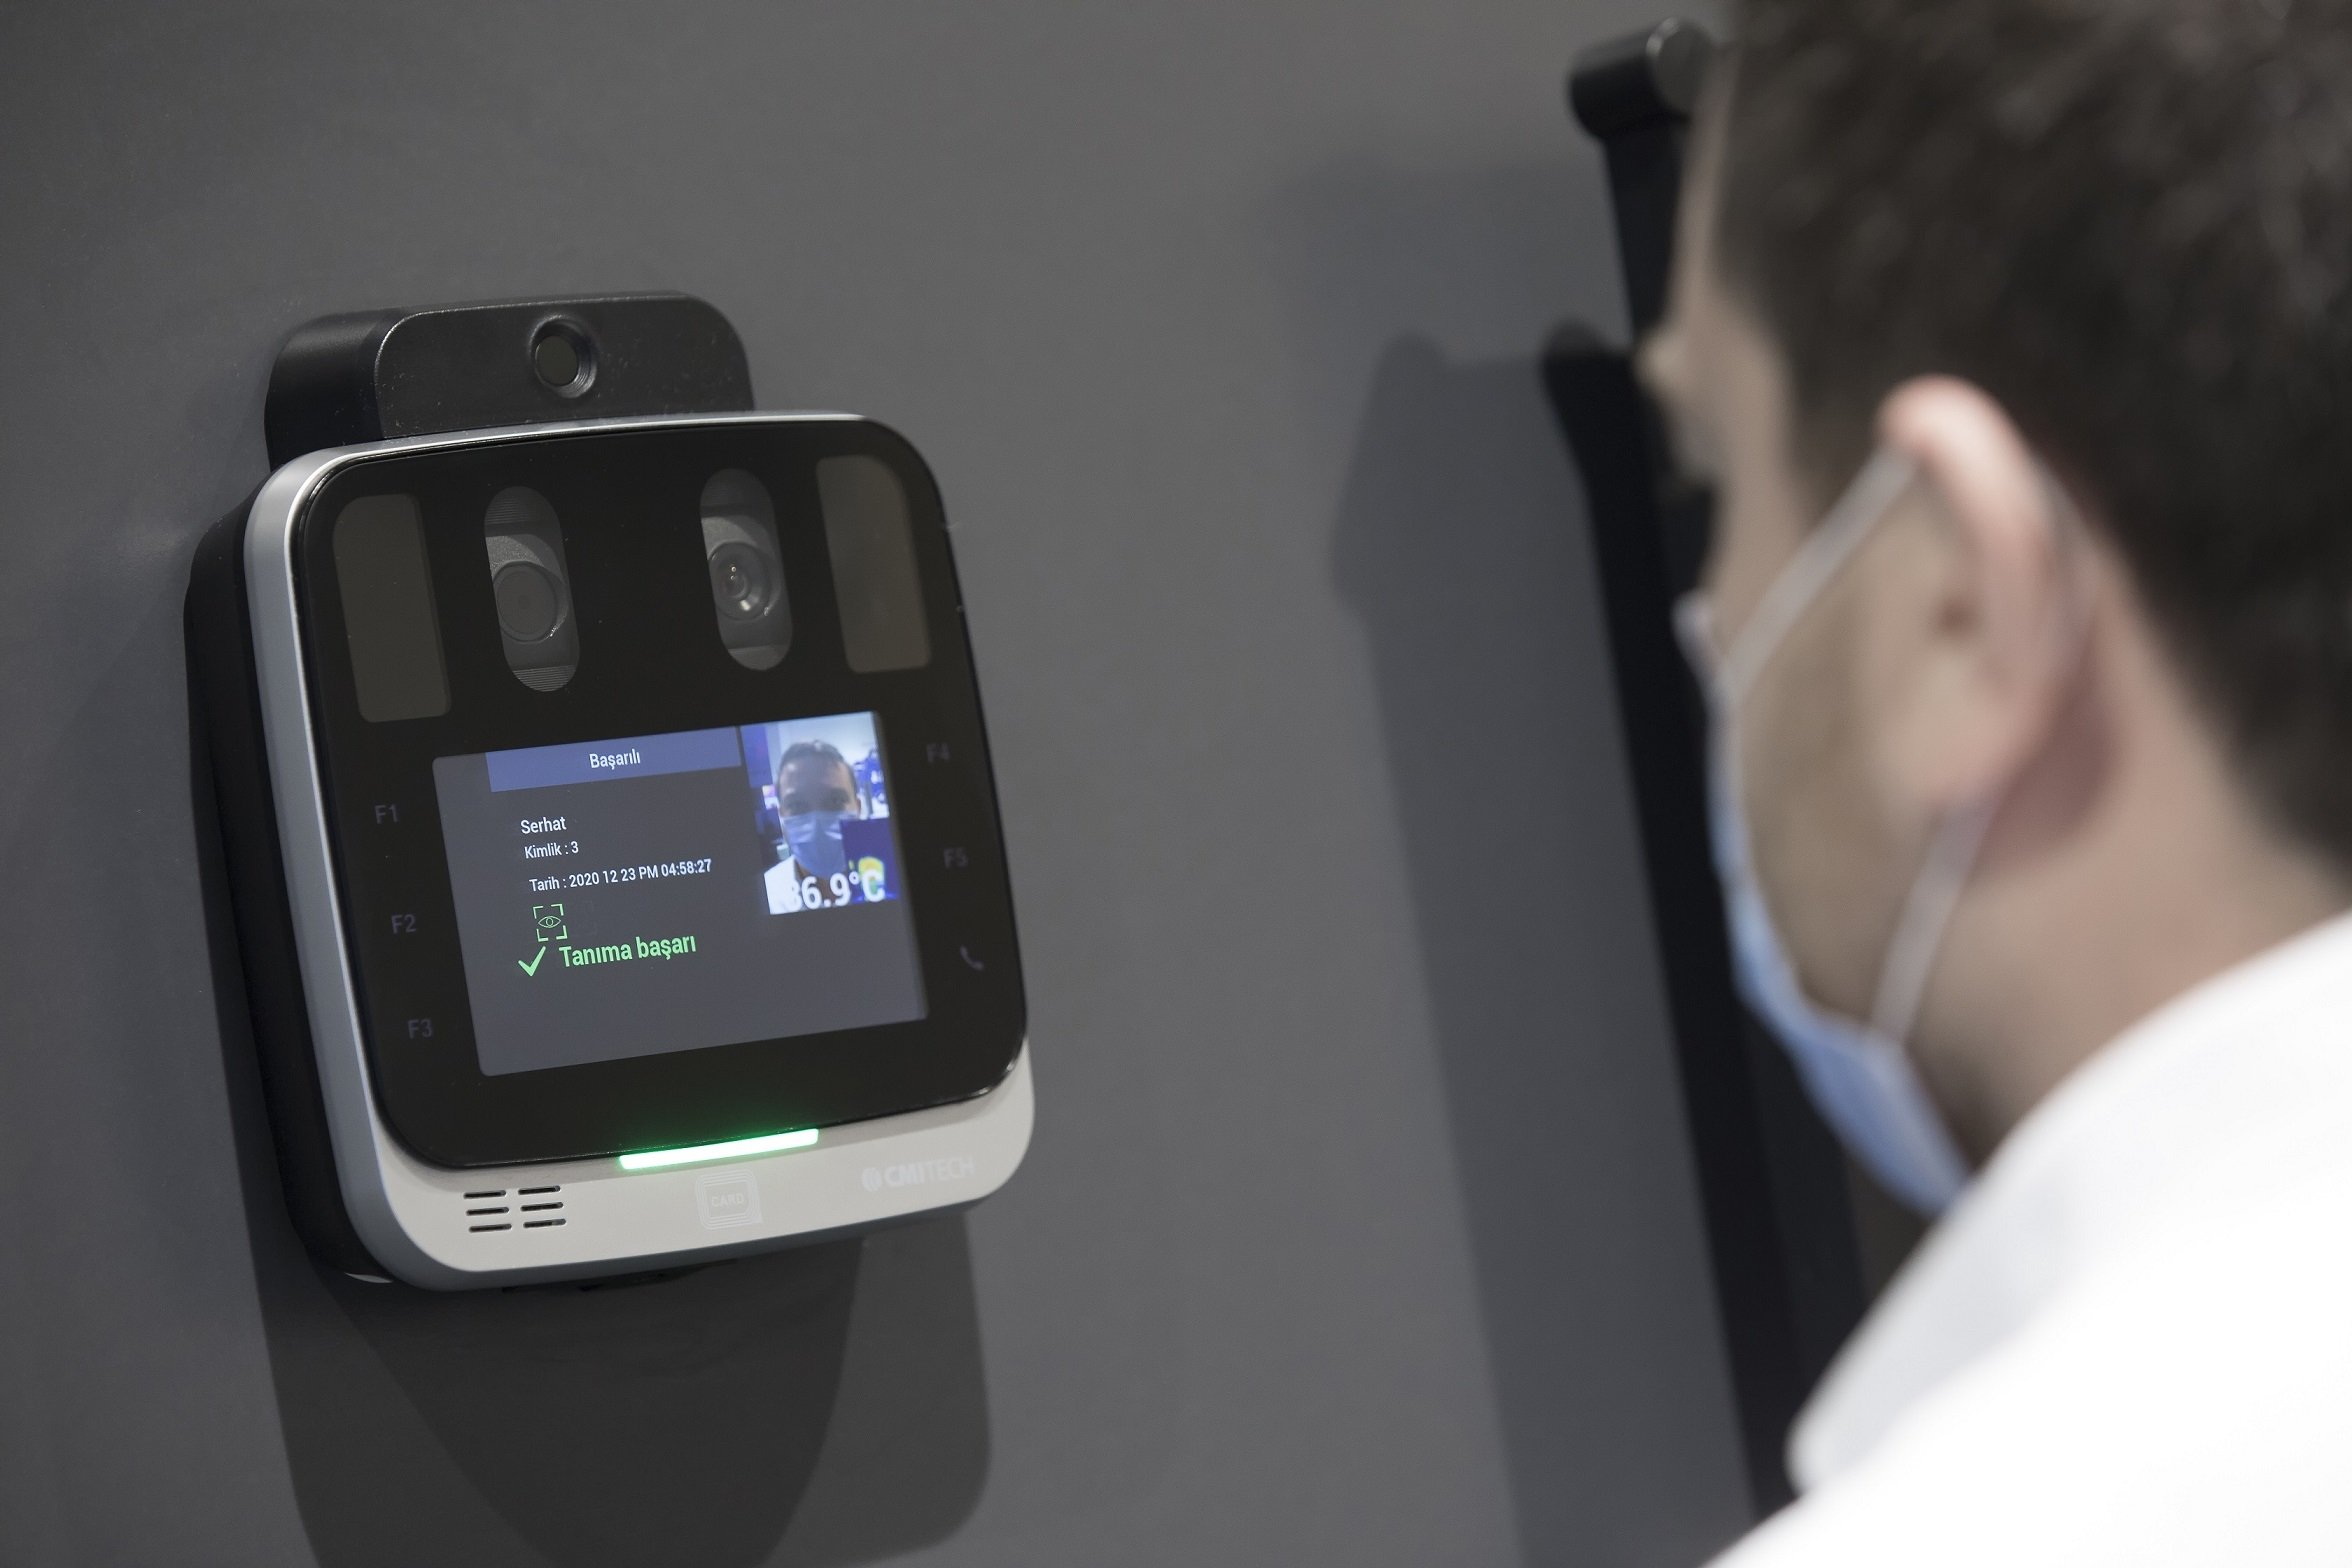 The coronavirus pandemic has spurred the interest in contactless security and density measuring technologies.